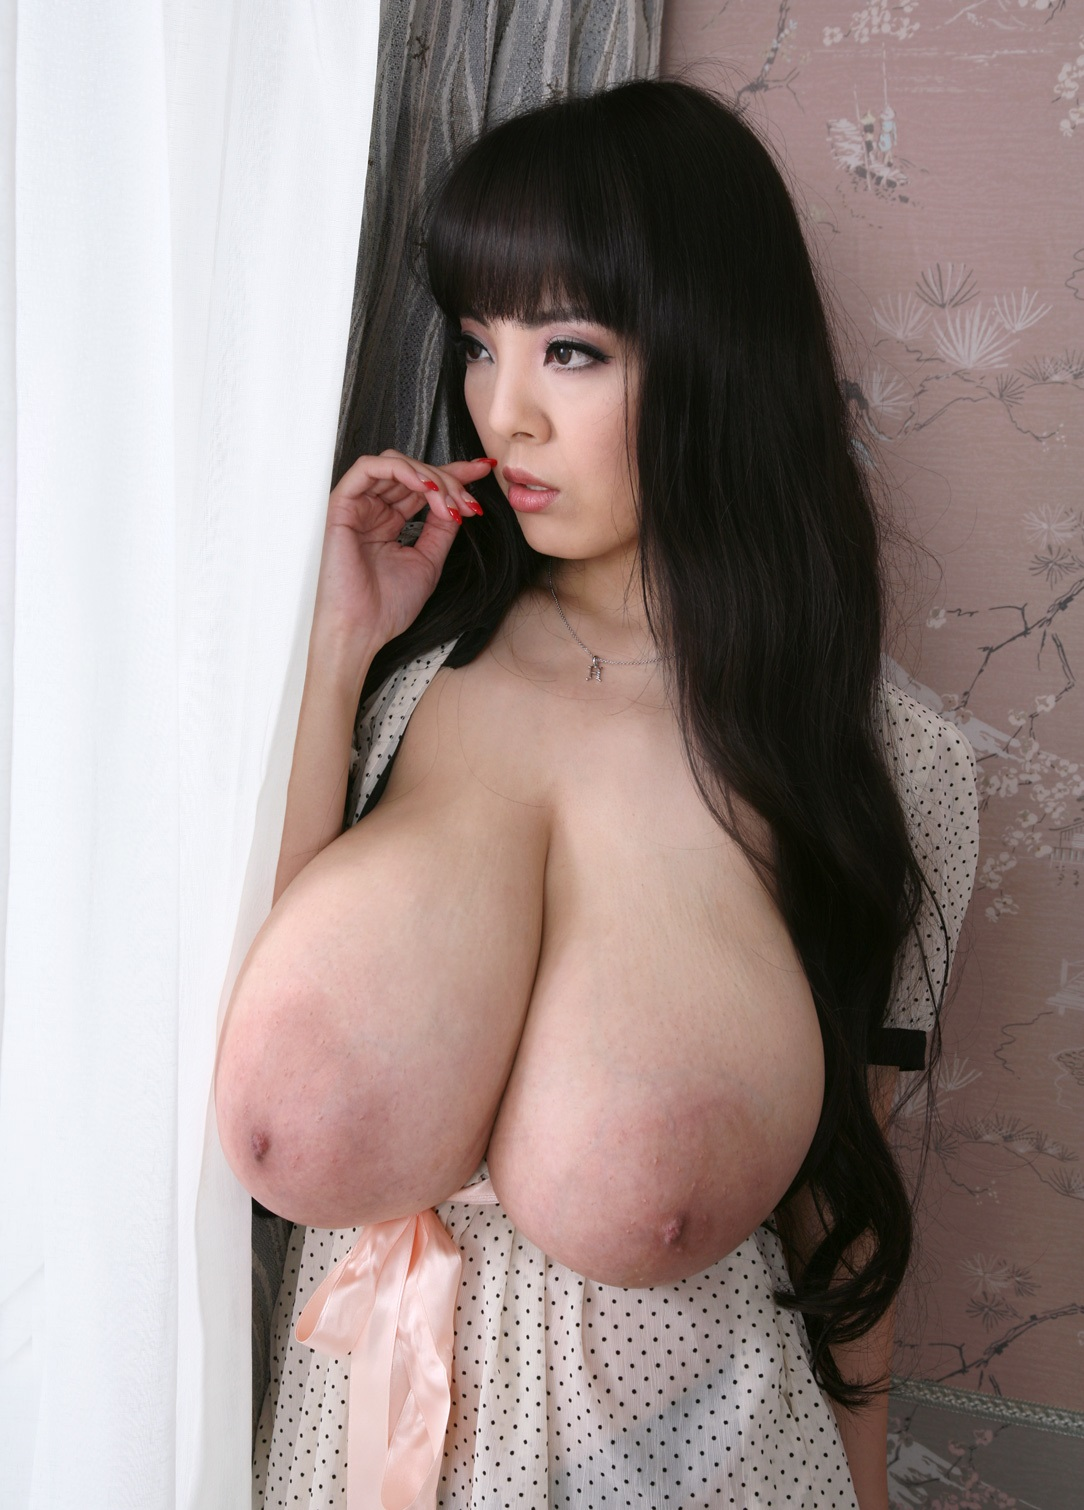 Nude girl squirt video